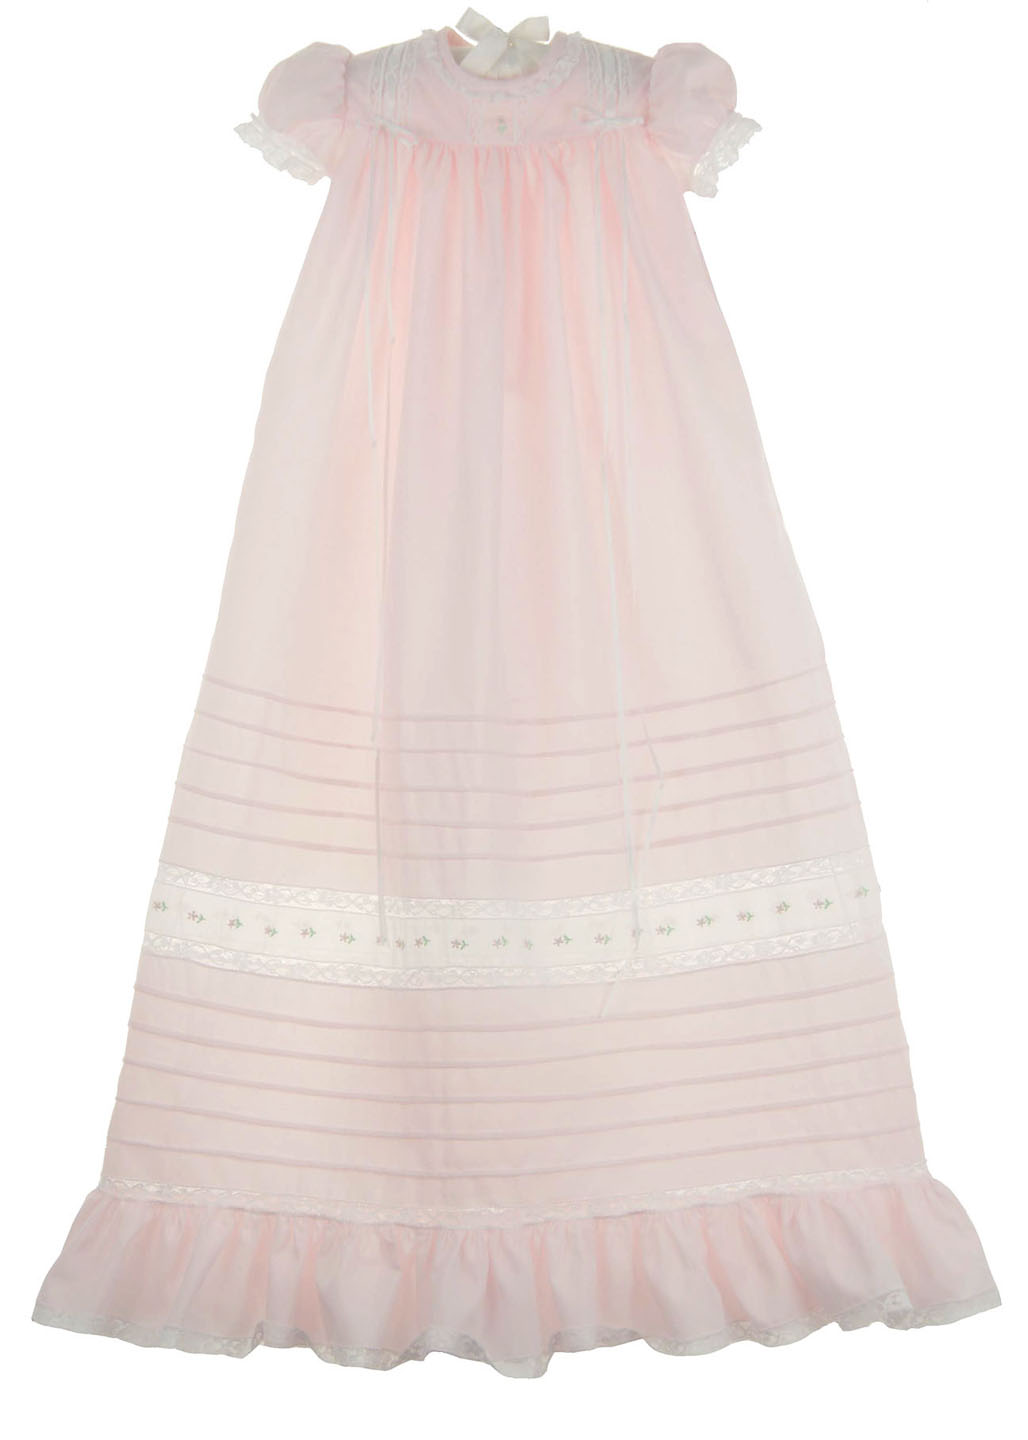 15ea28391 Peppermint Pony pink swiss batiste long gown and bonnet set,take ...